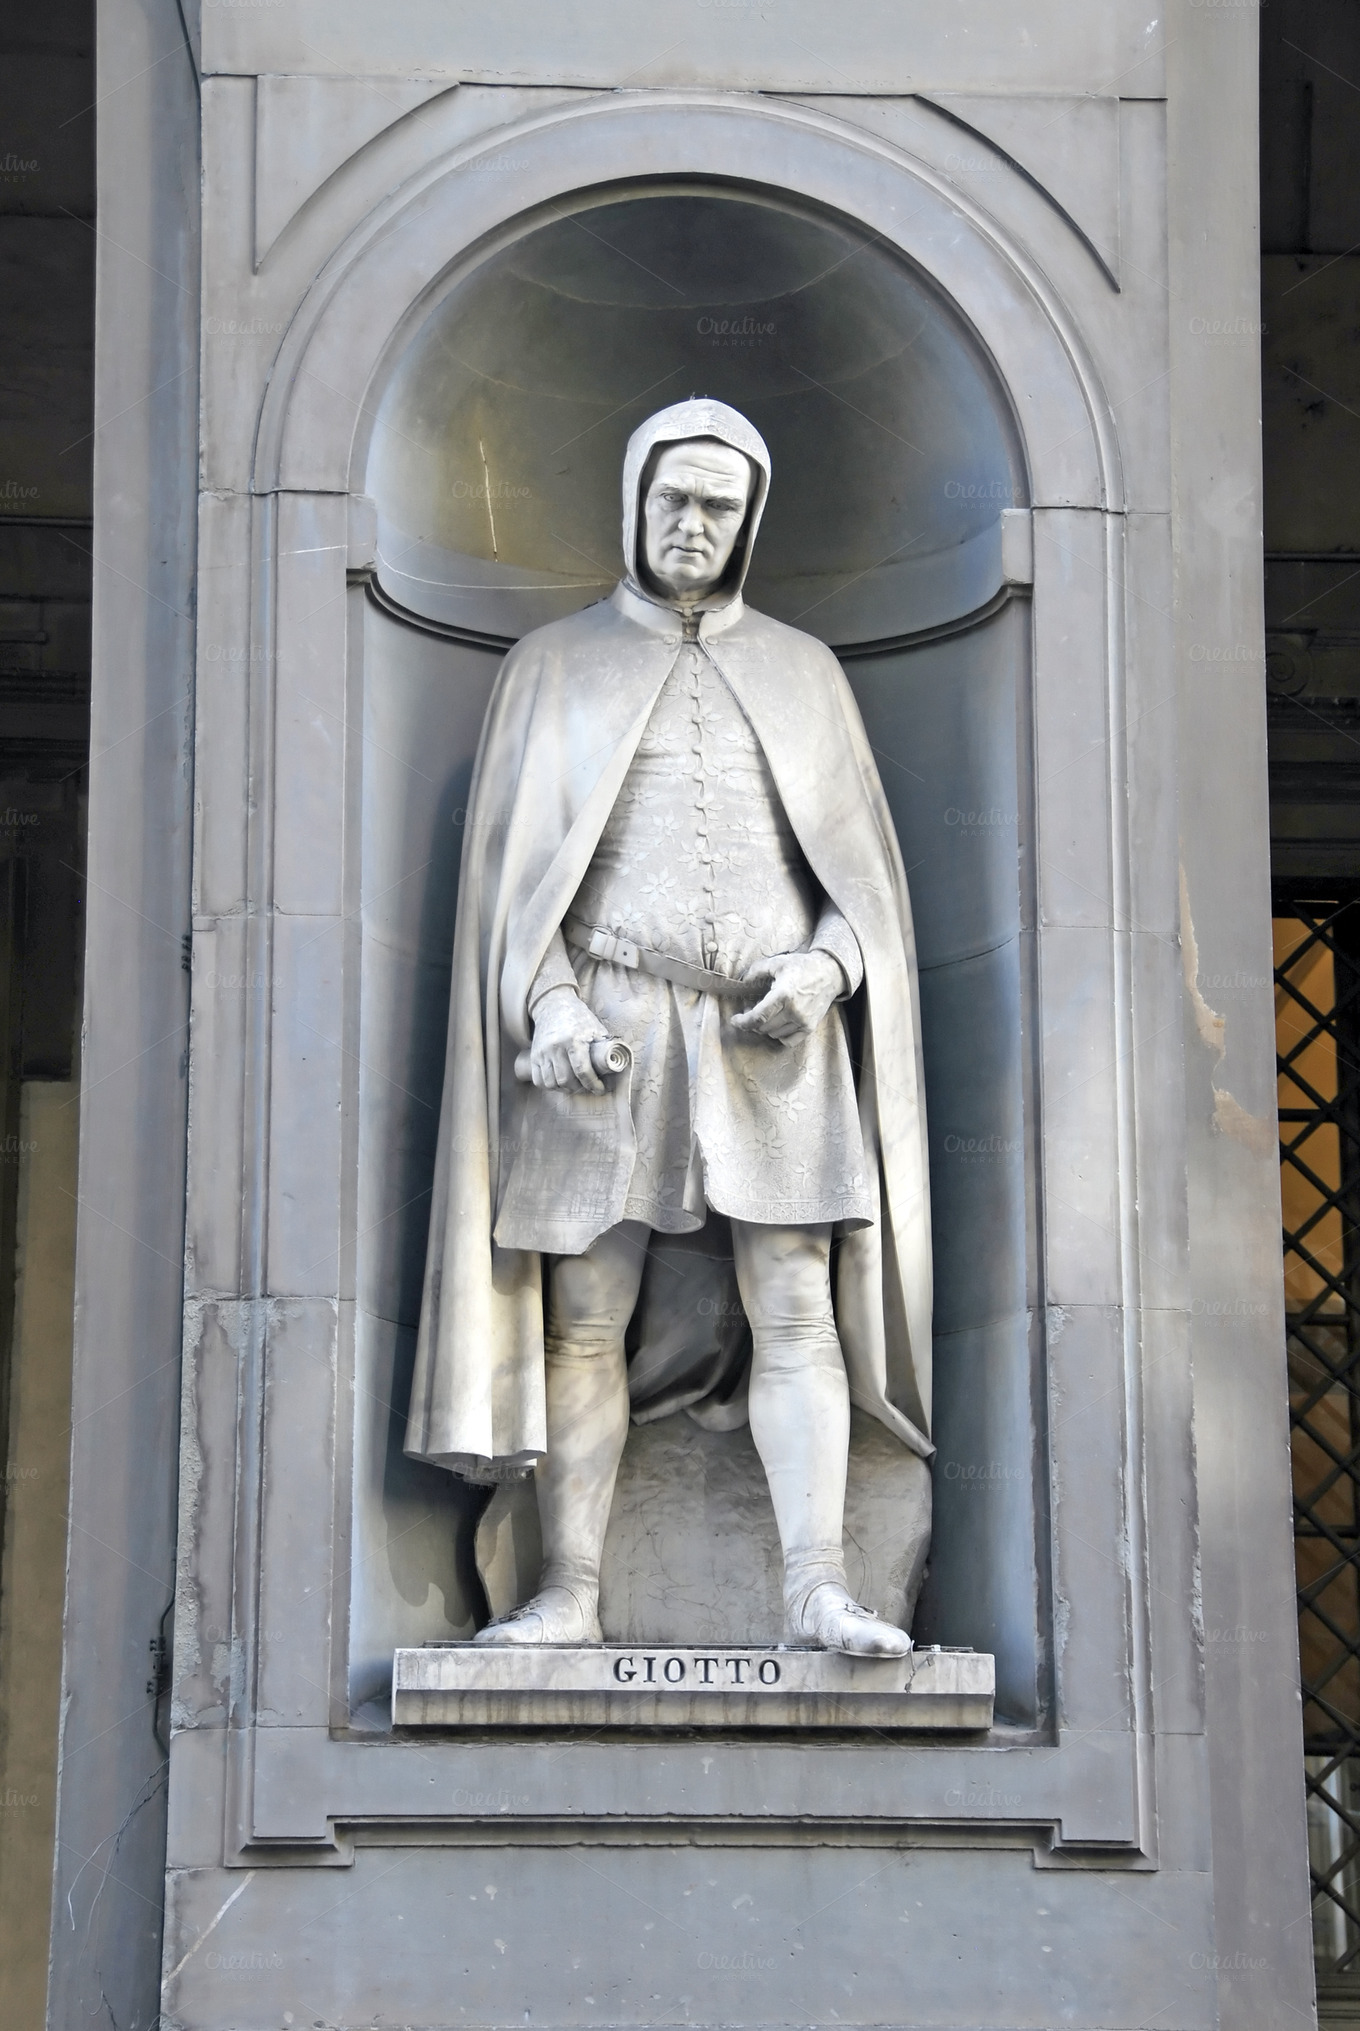 giotto statue in florence  italy